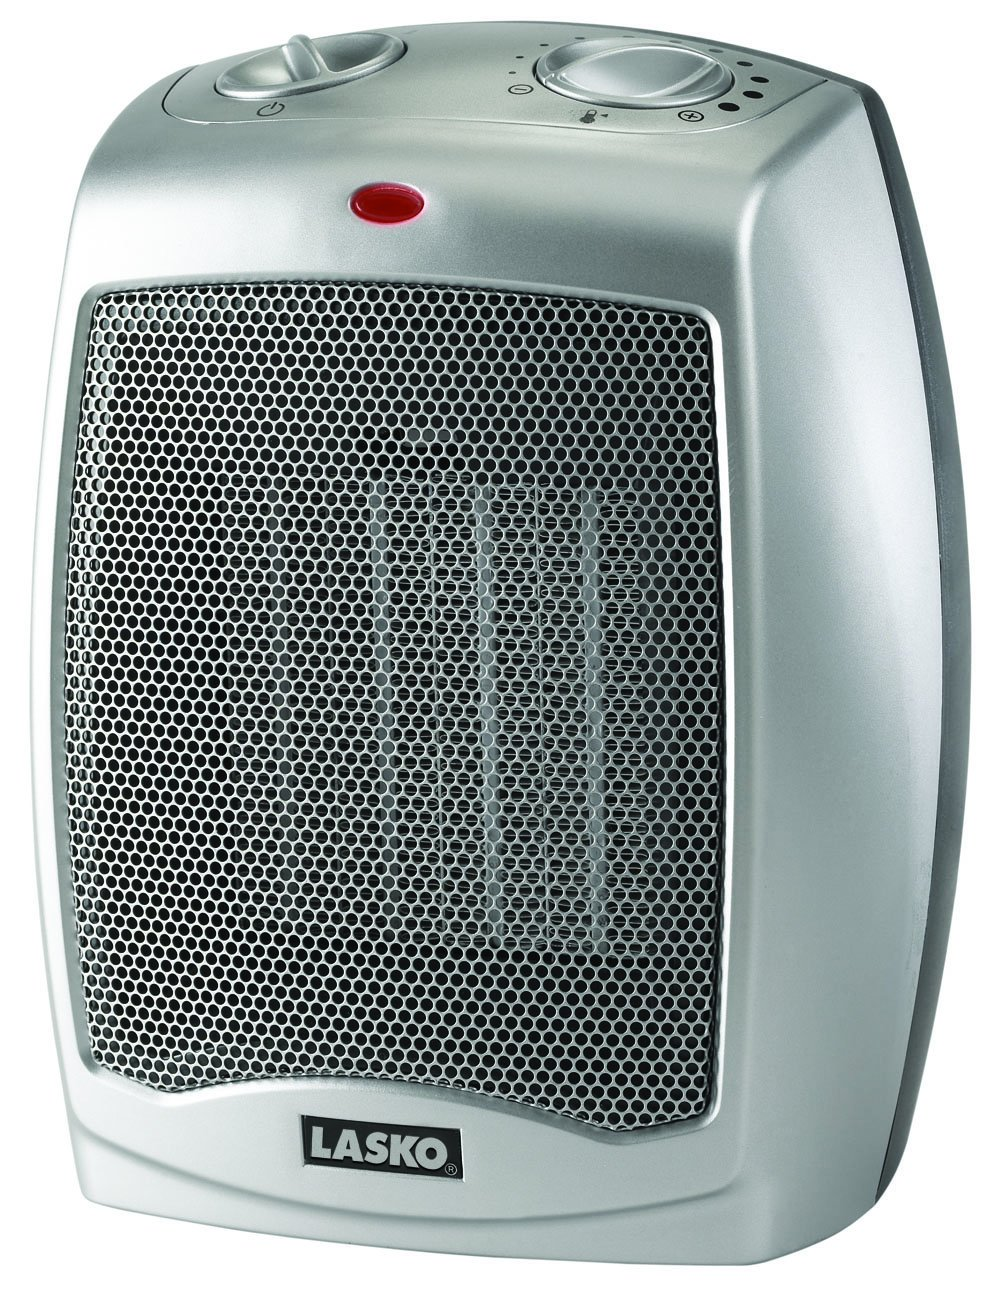 If you want a space heater which is energy efficient, it might be worth looking at buying the Lasko 754200.